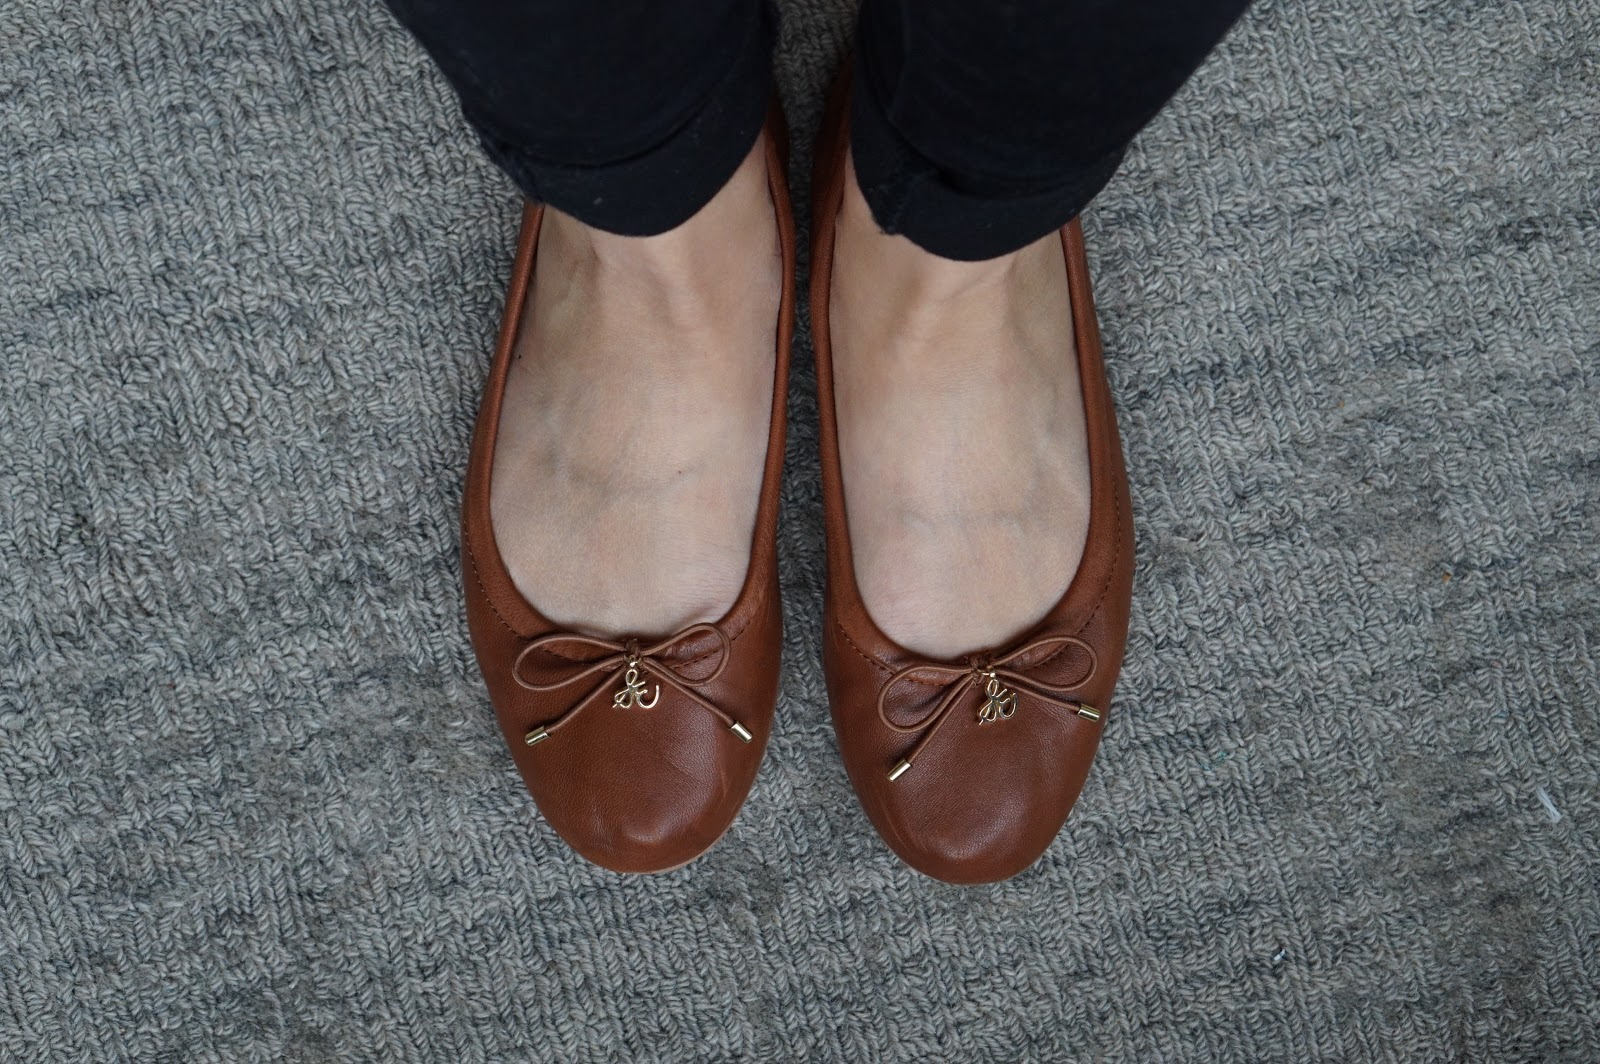 764630c3ec5 Sam Edelman Felicia Flats in Saddle Leather - One Year Use Review ...